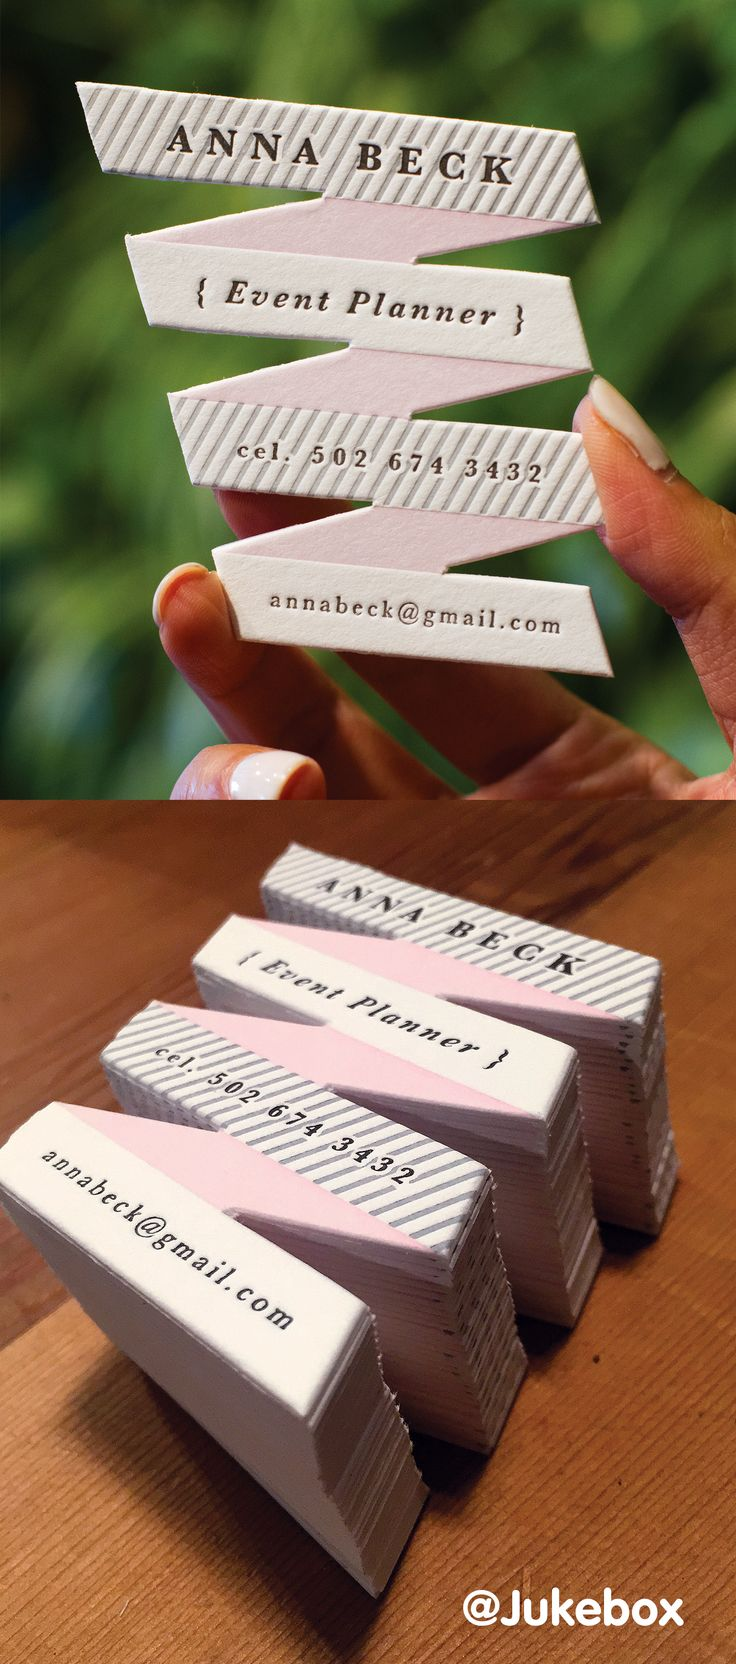 Letterpress Business Cards - Personalize your business cards with a custom die-cut shape, like these cute letterpressed ribbon shaped cards created for an event planner!  Designed and Produced by @Jukeboxprint